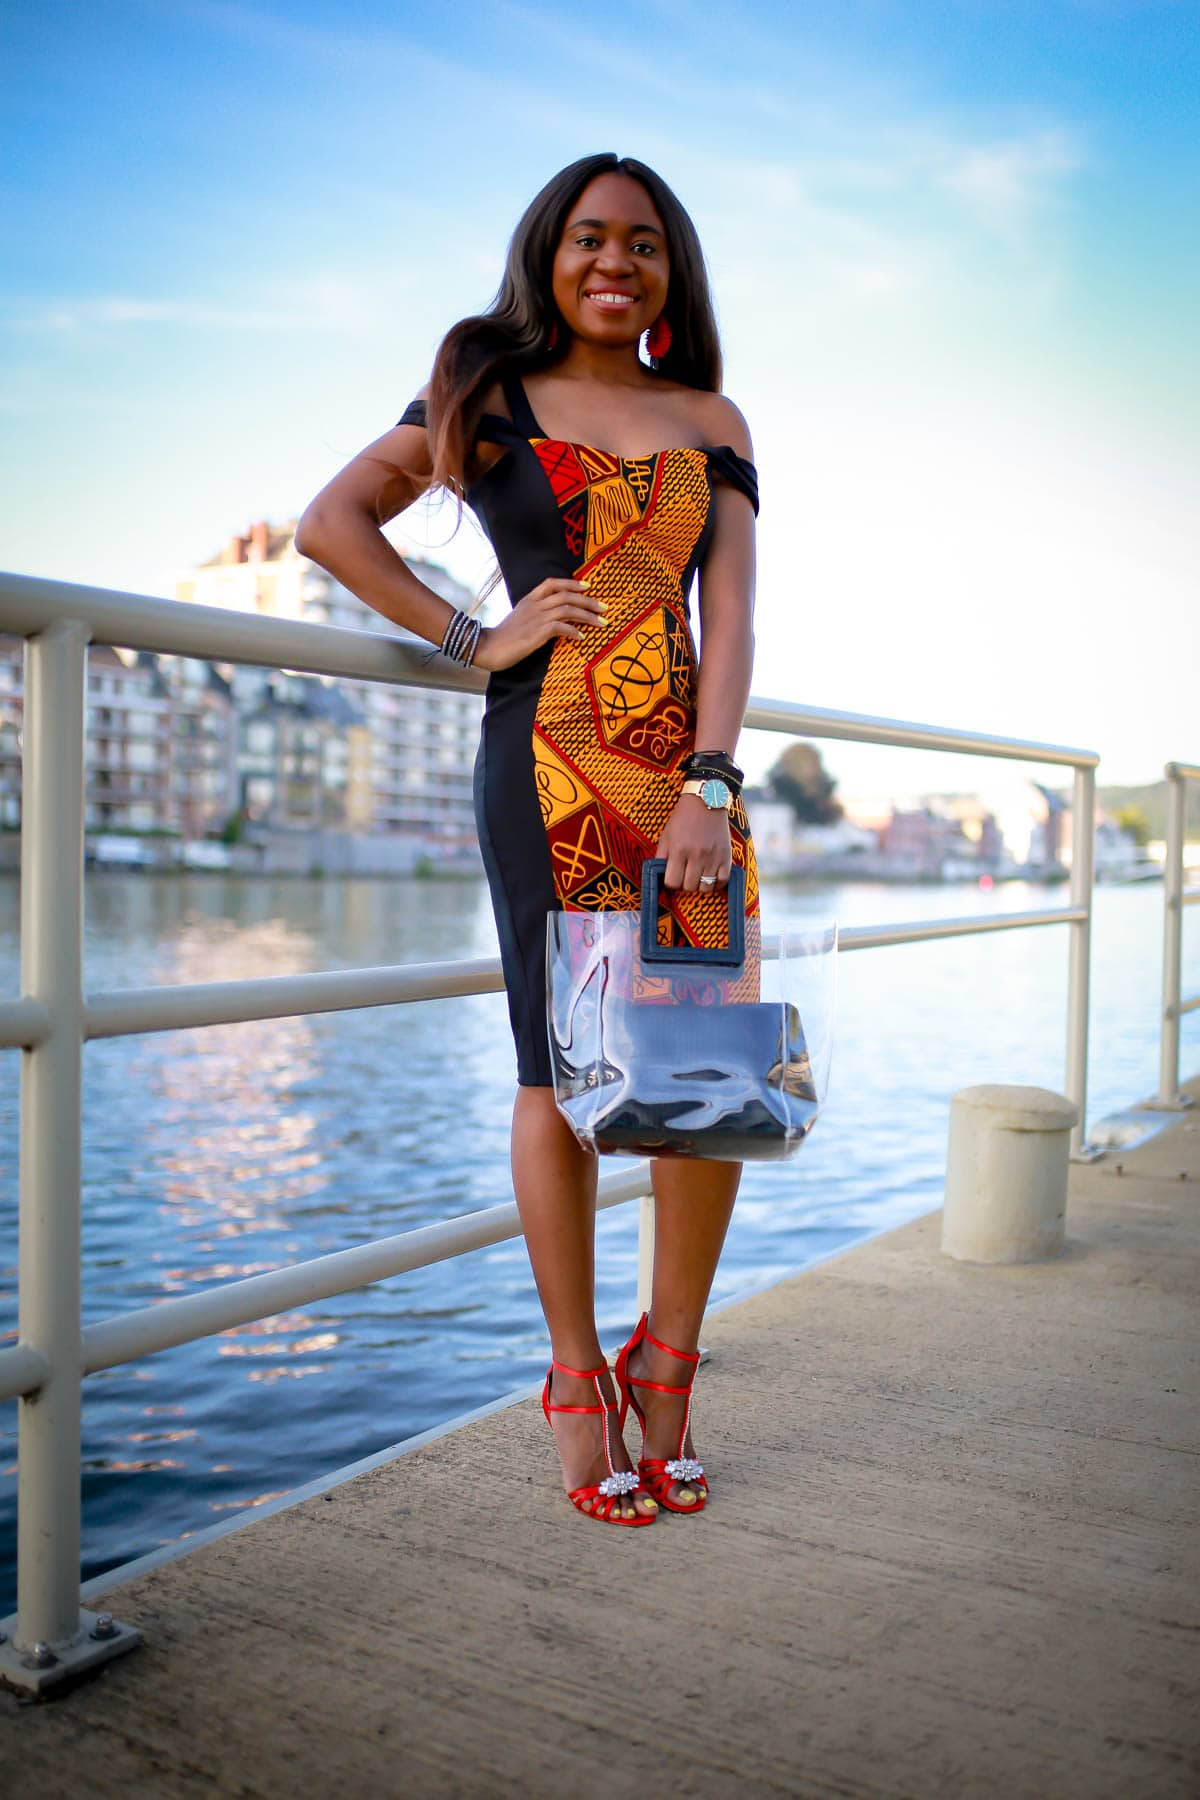 #africanwedding #ankarastyles Totally crushing on this African print sheath dress that is perfect for special events like weddings, birthdayparties and more. African fashion lover, Louisa, shares this stunning ankara dress and where to find a similar style. #africanfashion